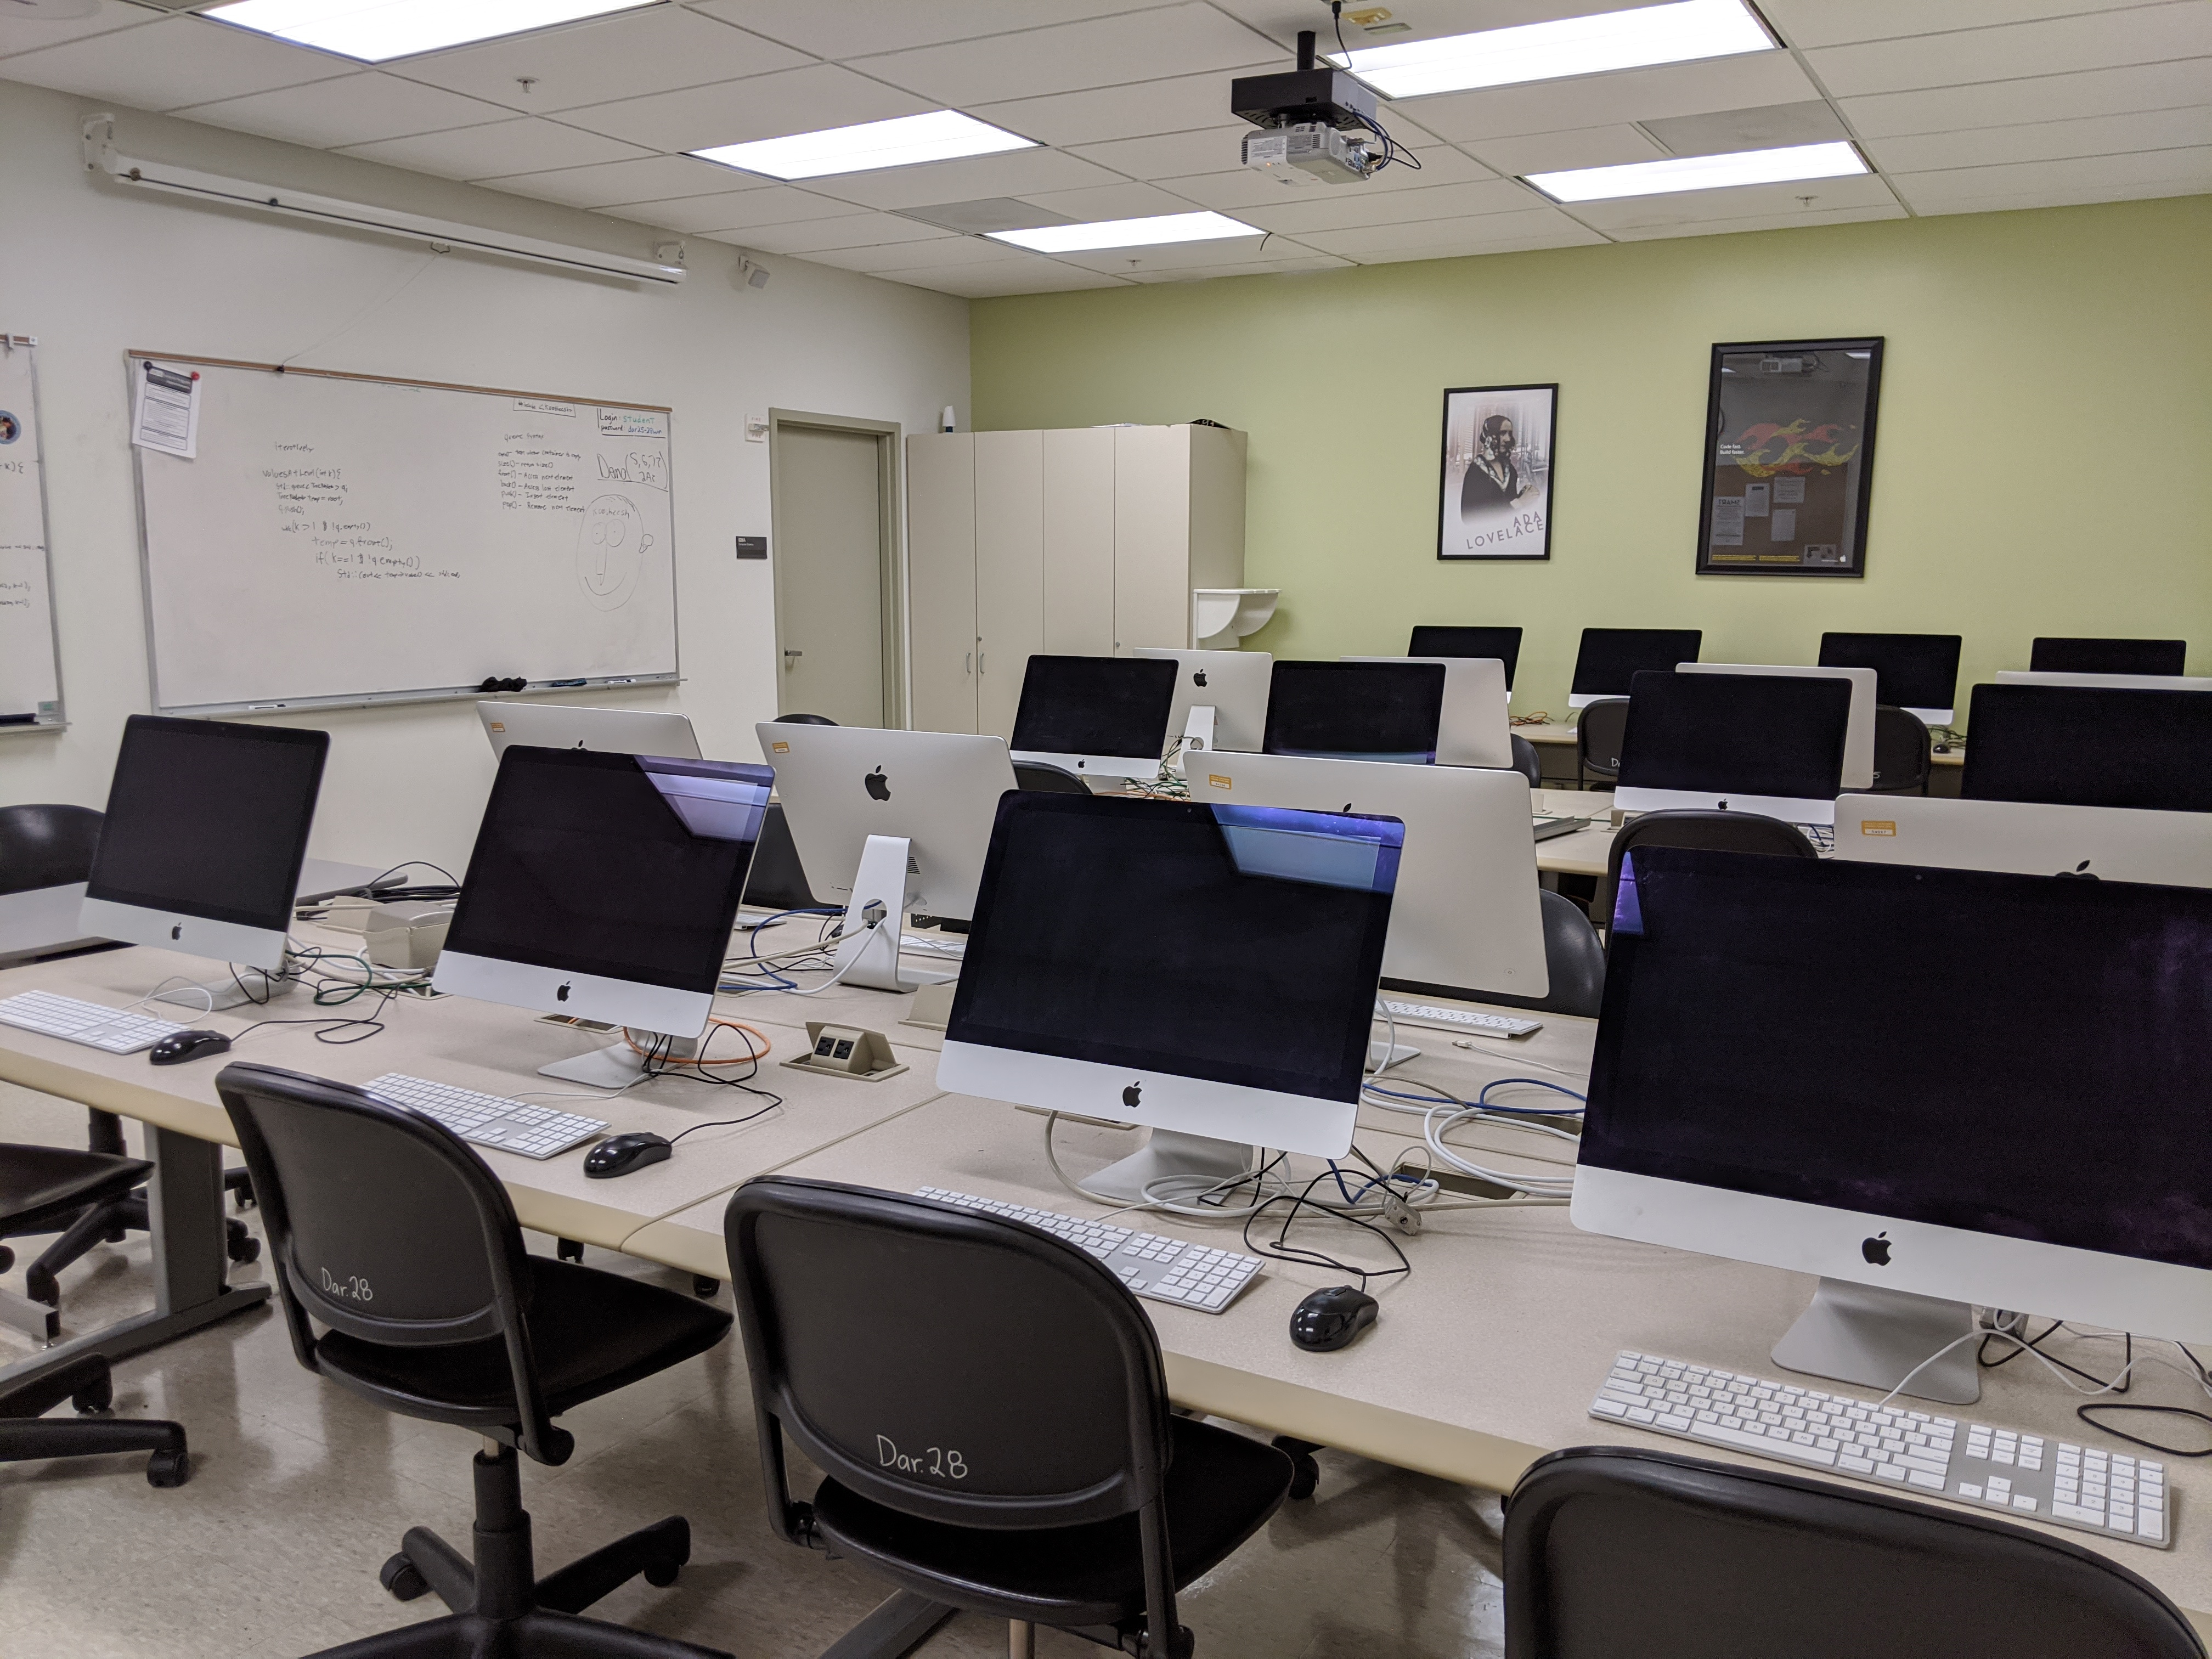 Empty computer lab with rows of computers